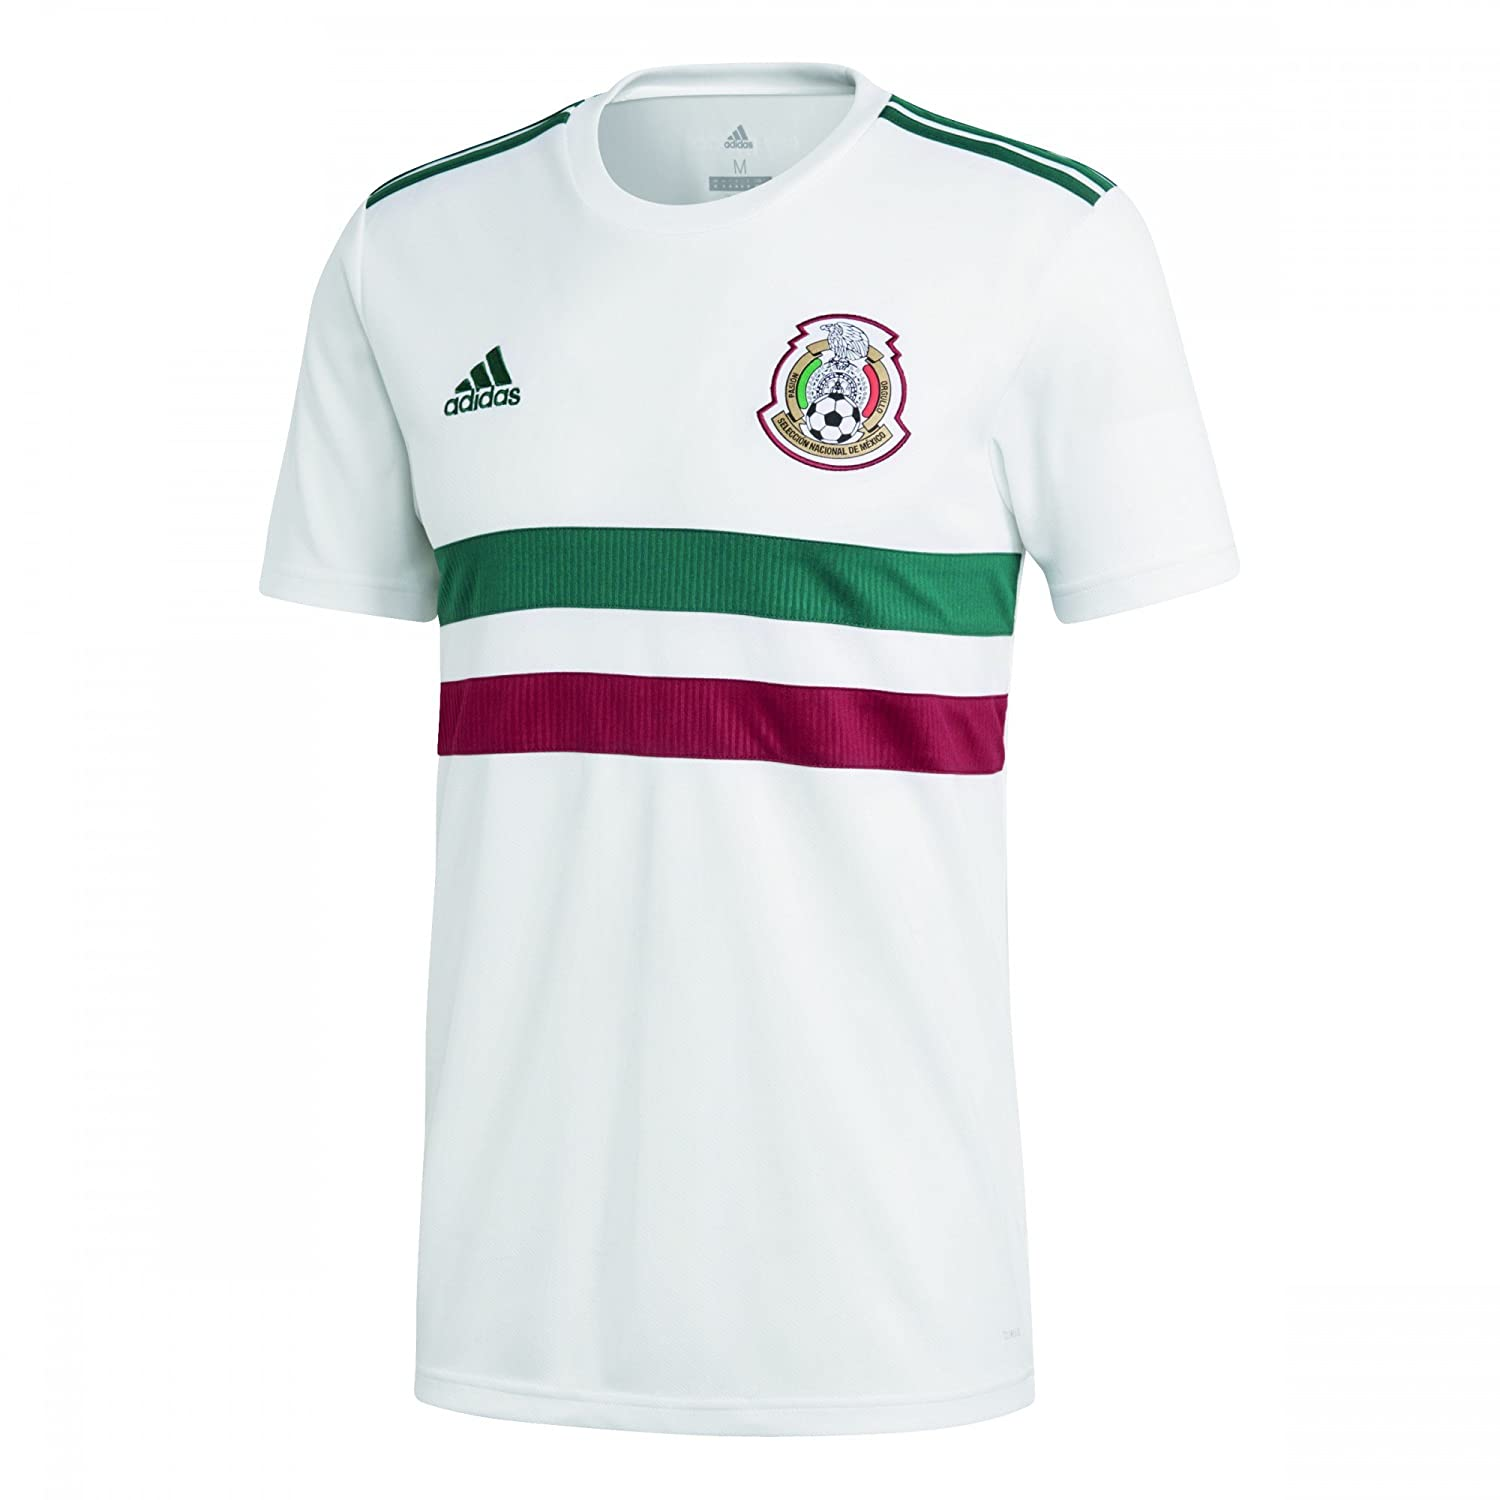 eacbd853f Amazon.com : adidas 2018-2019 Mexico Away Football Soccer T-Shirt Jersey  (Kids) : Clothing